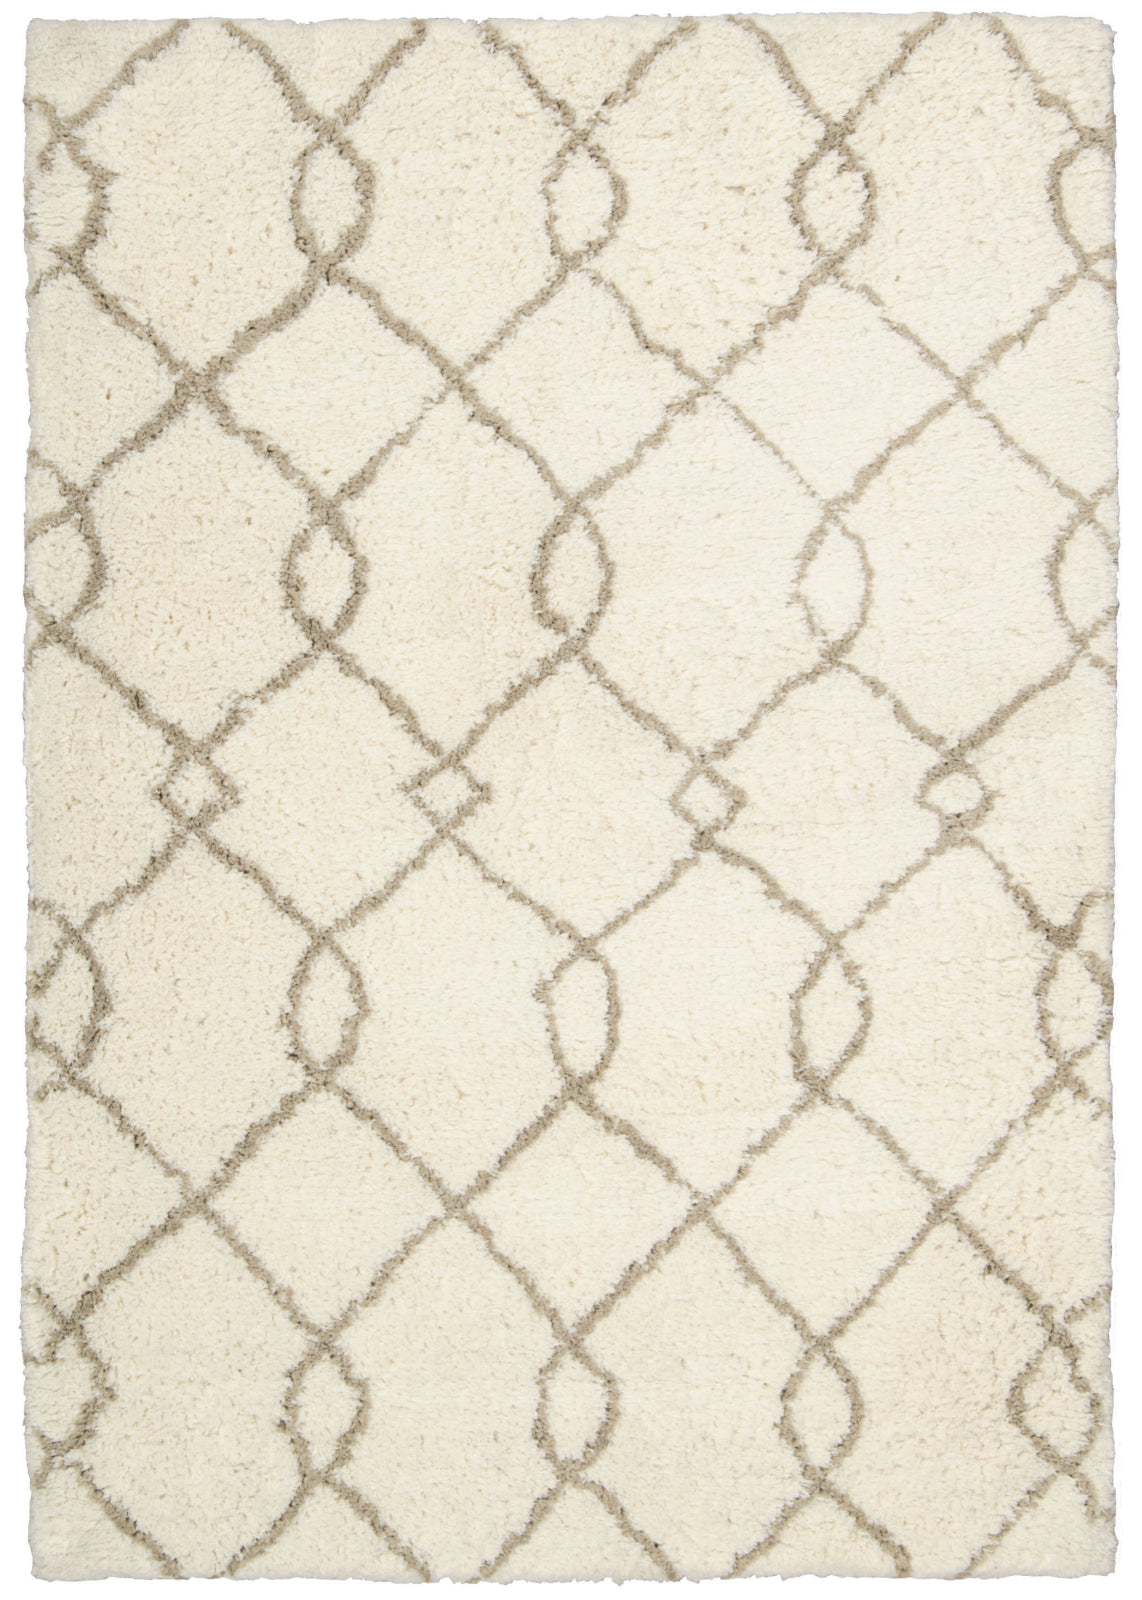 Nourison Galway GLW02 Ivory Tan Area Rug main image